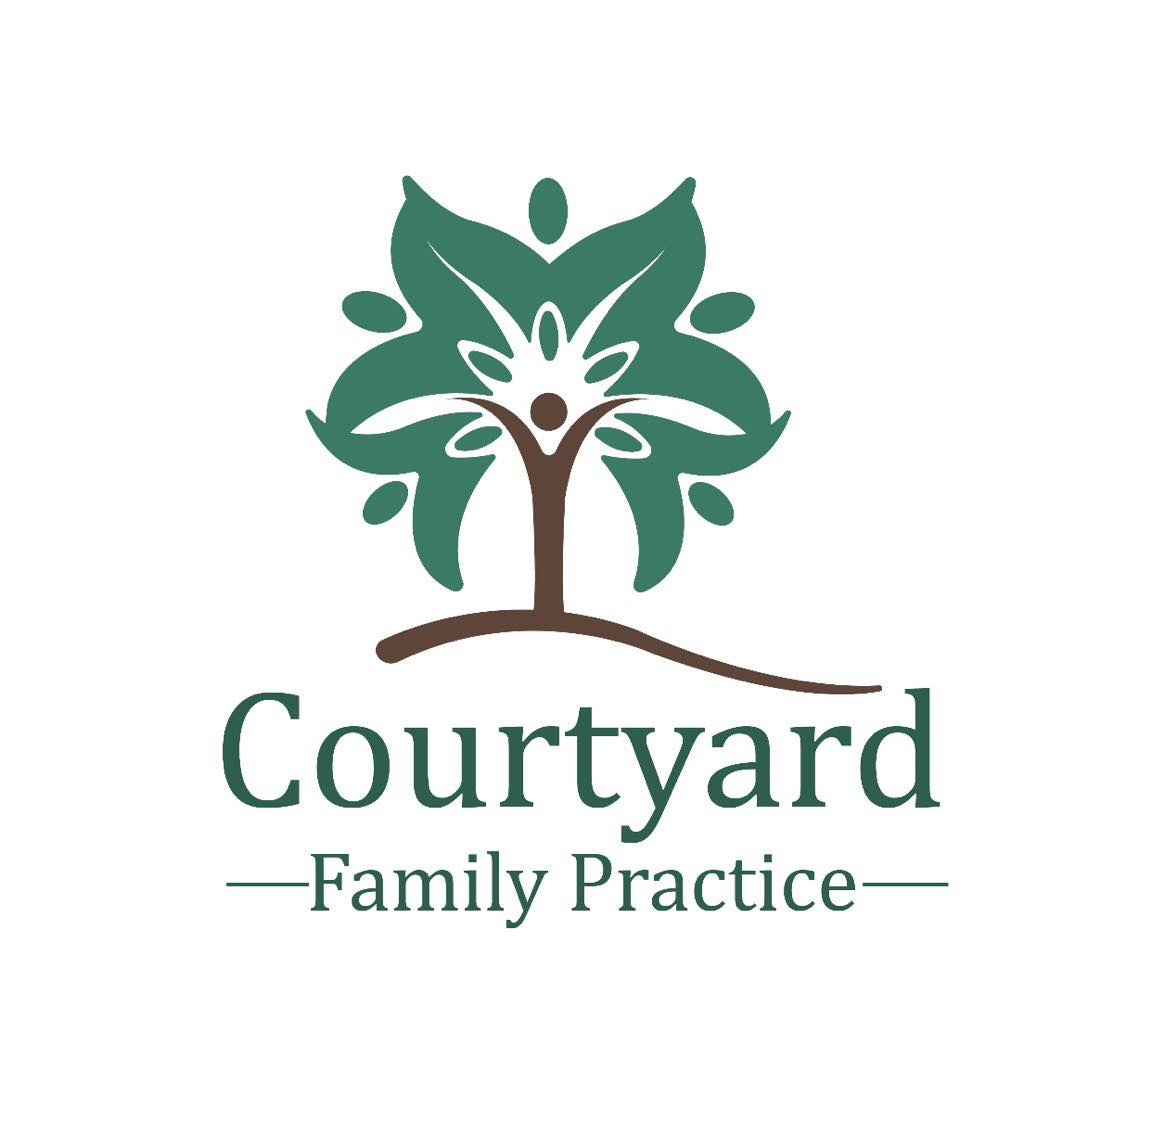 Courtyard Family Practice